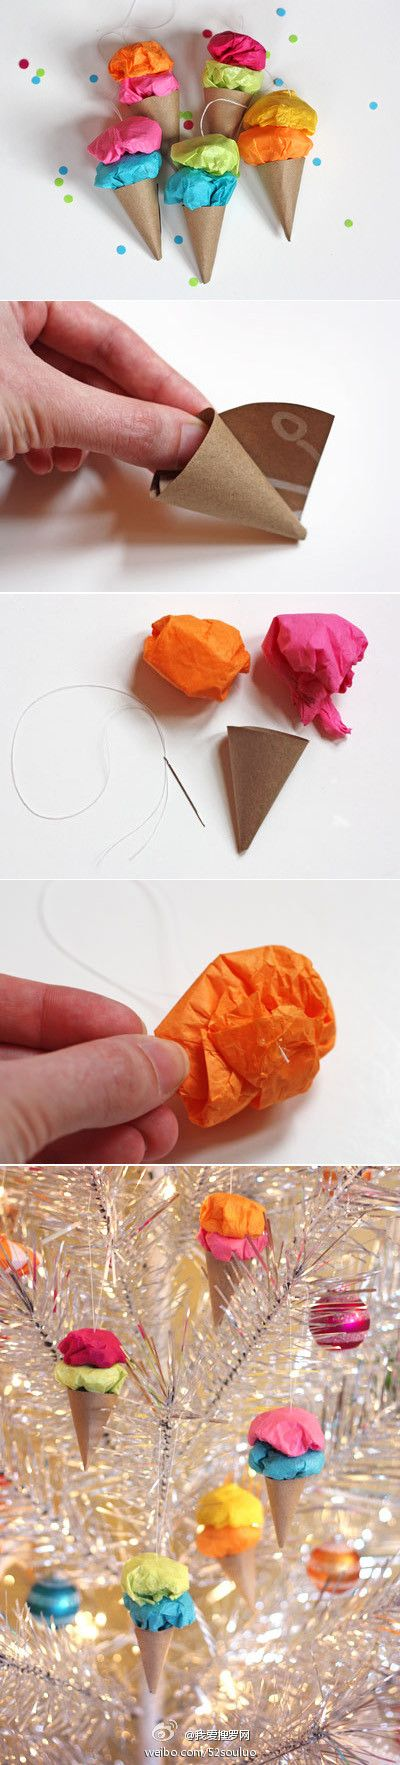 #DIY paper ice cream cones -- use as ornaments, gift toppers, etc!